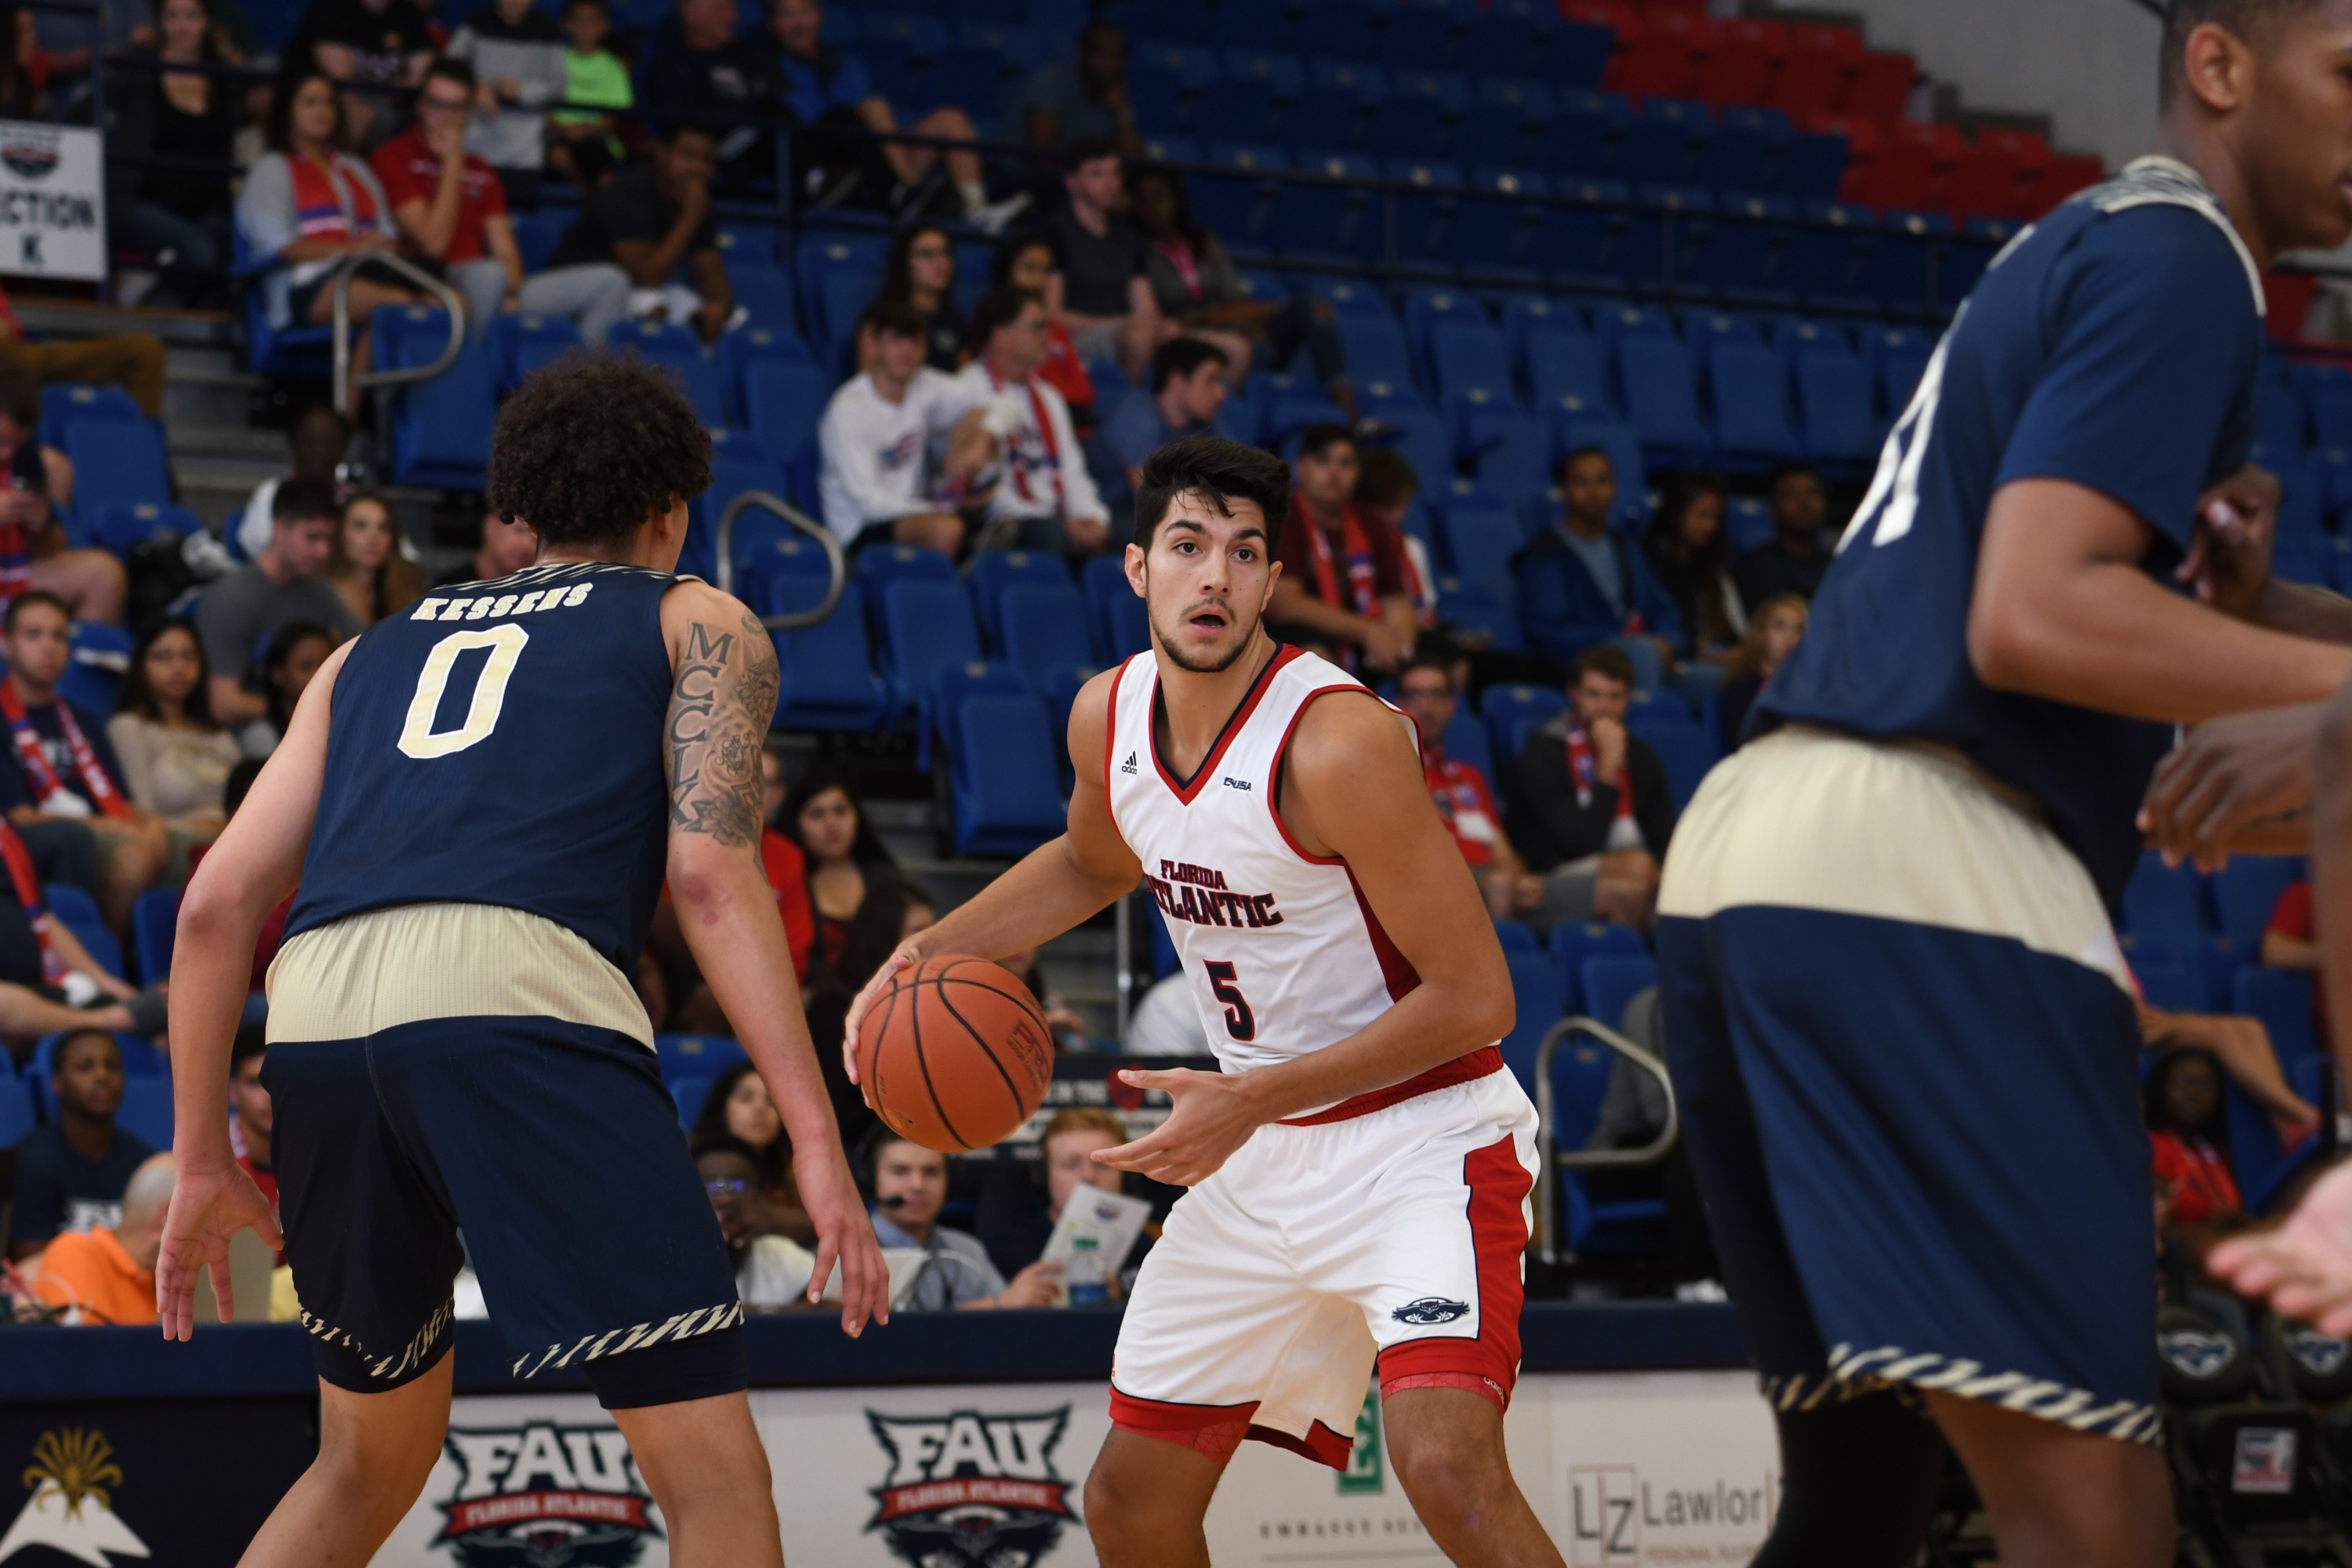 William Pfister (pictured) and Gerdarius Troutman were named to the NABC Honors Court.